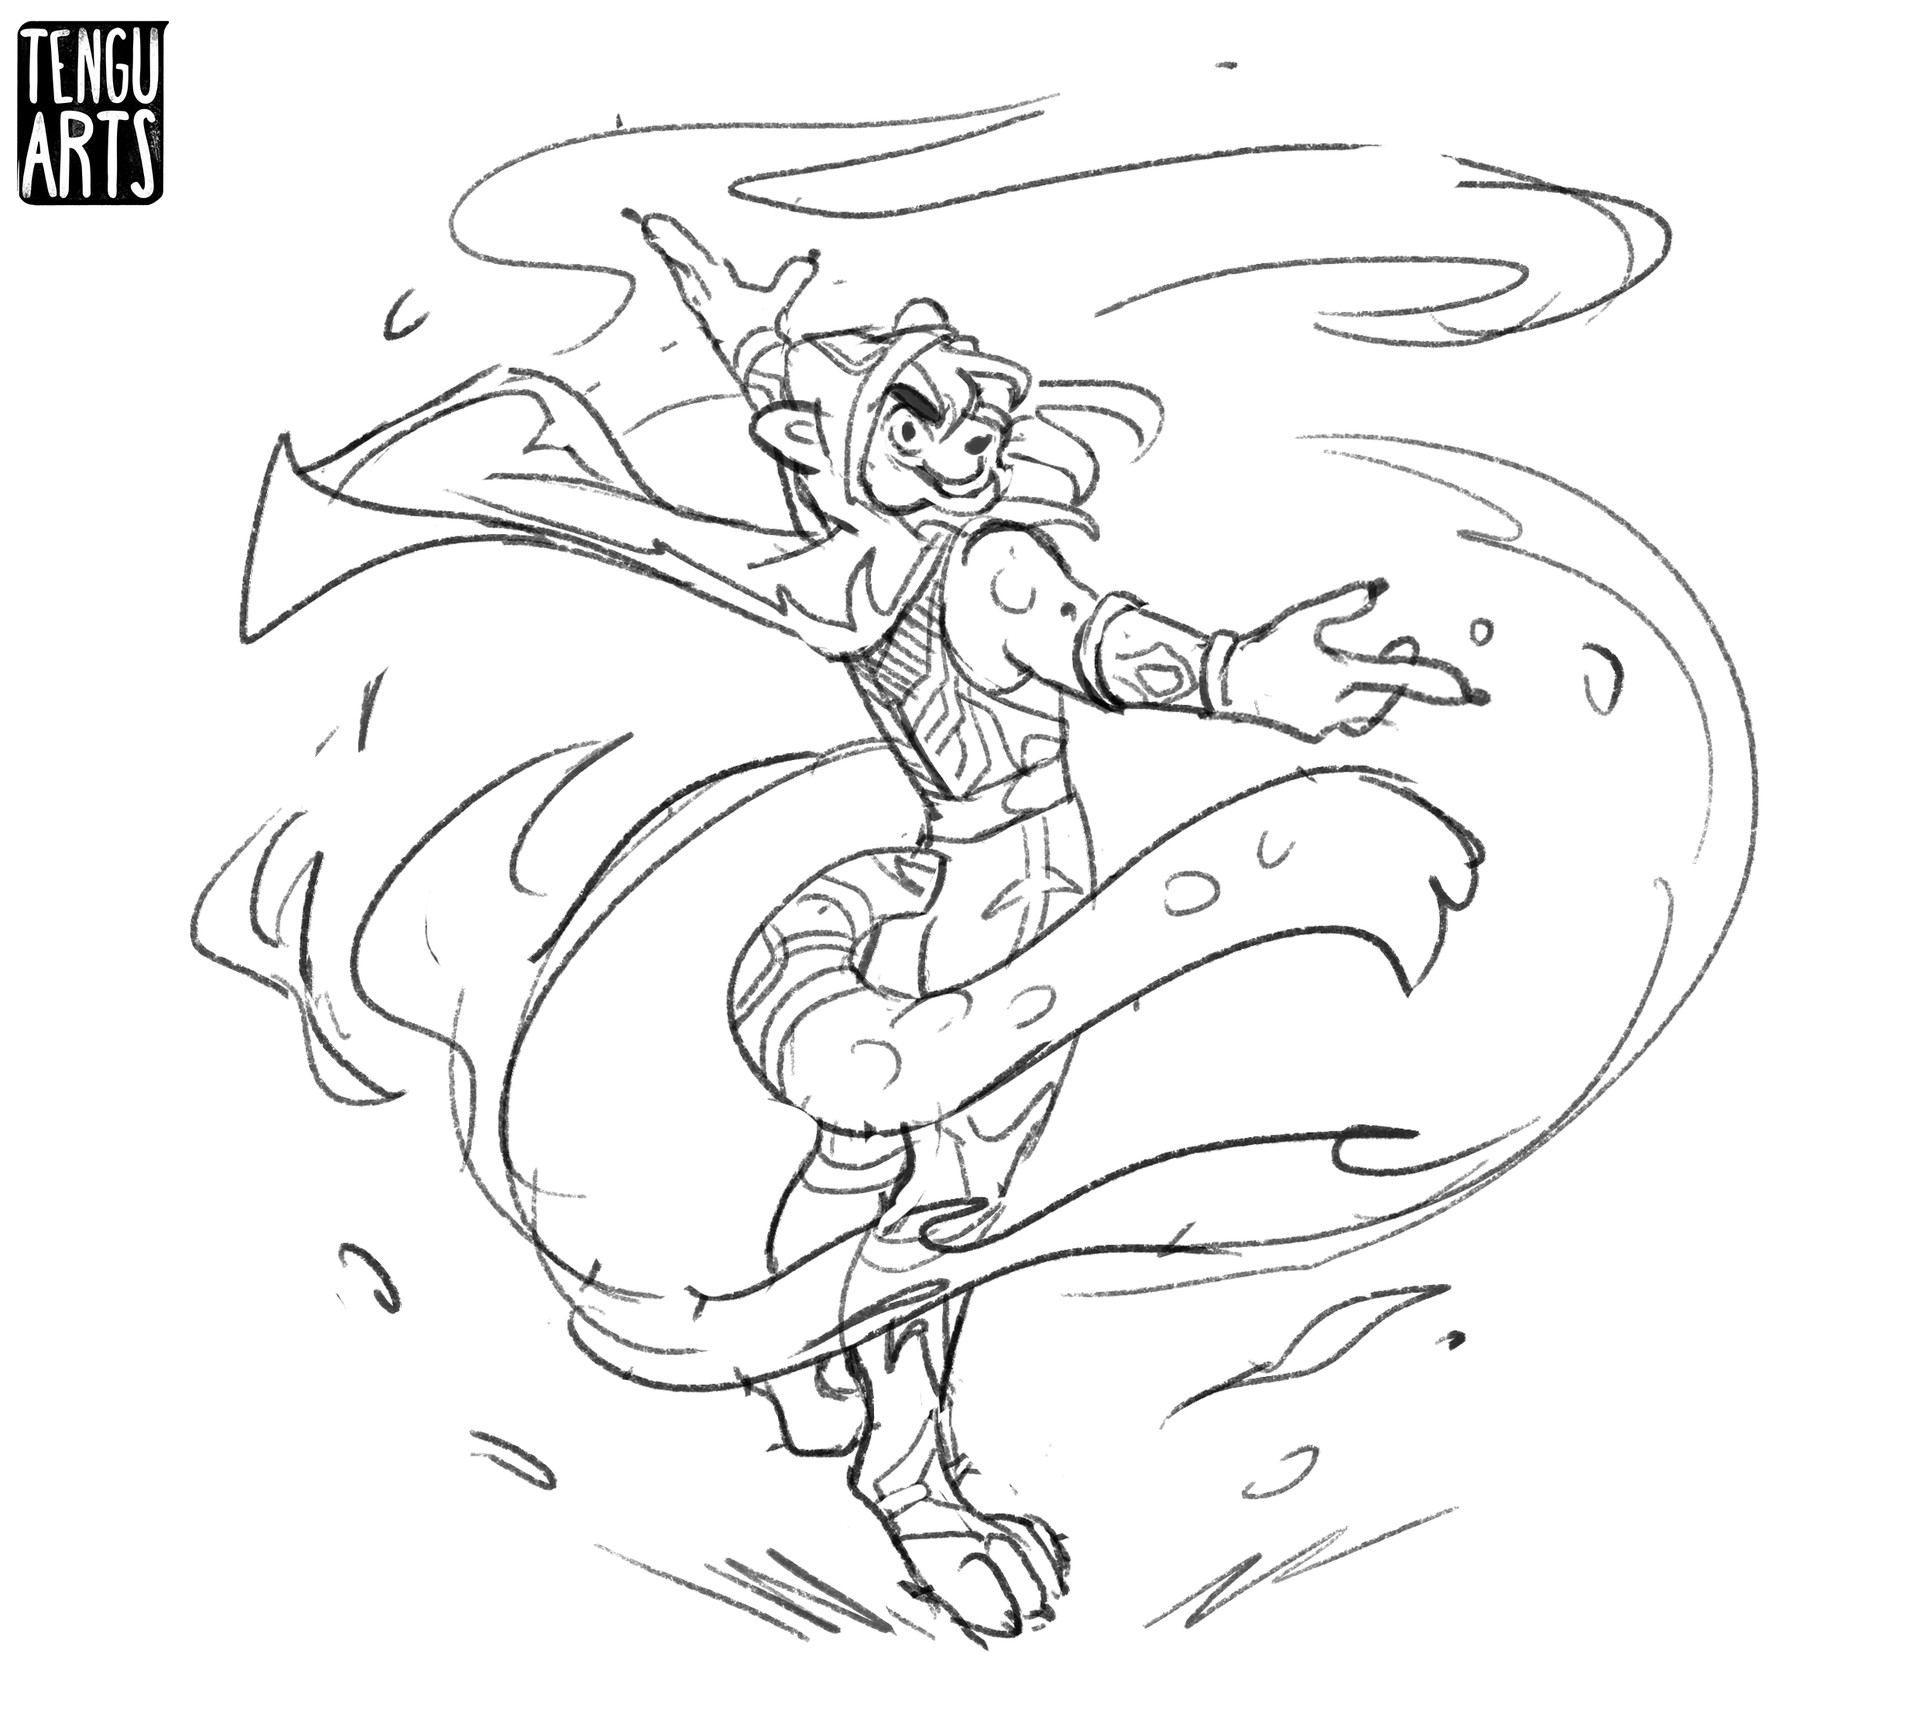 Sketch: I tried my best to do a dynamic pose with this one.